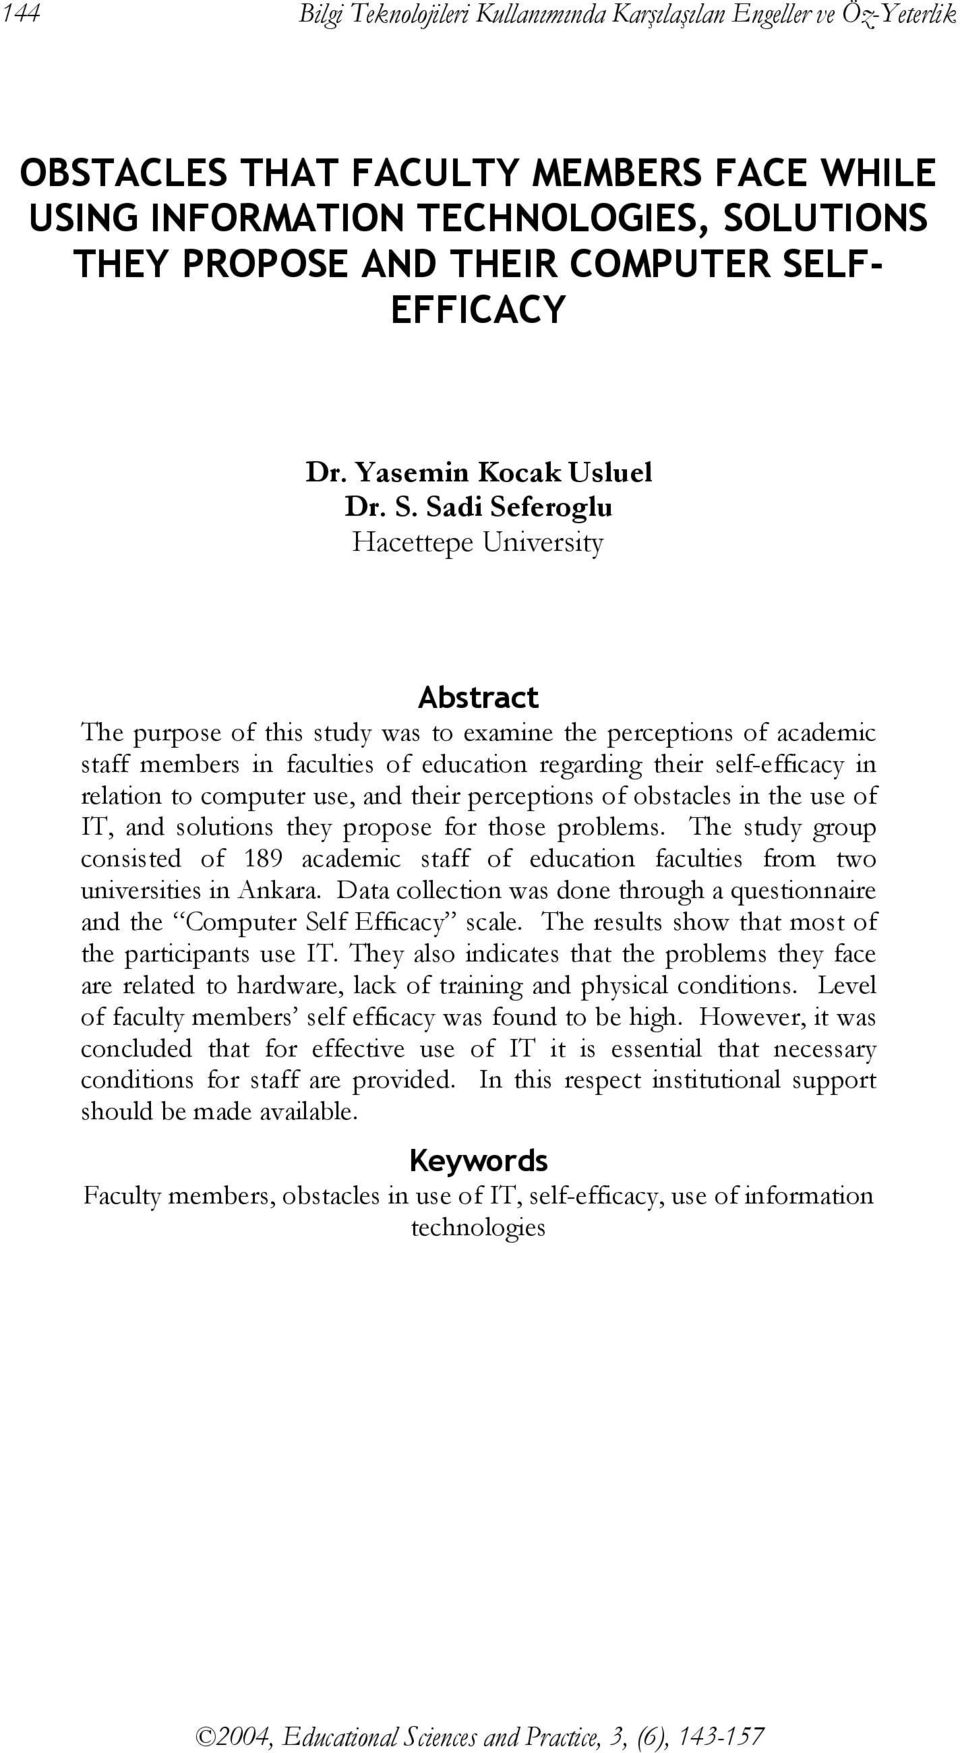 Sadi Seferoglu Hacettepe University Abstract The purpose of this study was to examine the perceptions of academic staff members in faculties of education regarding their self-efficacy in relation to